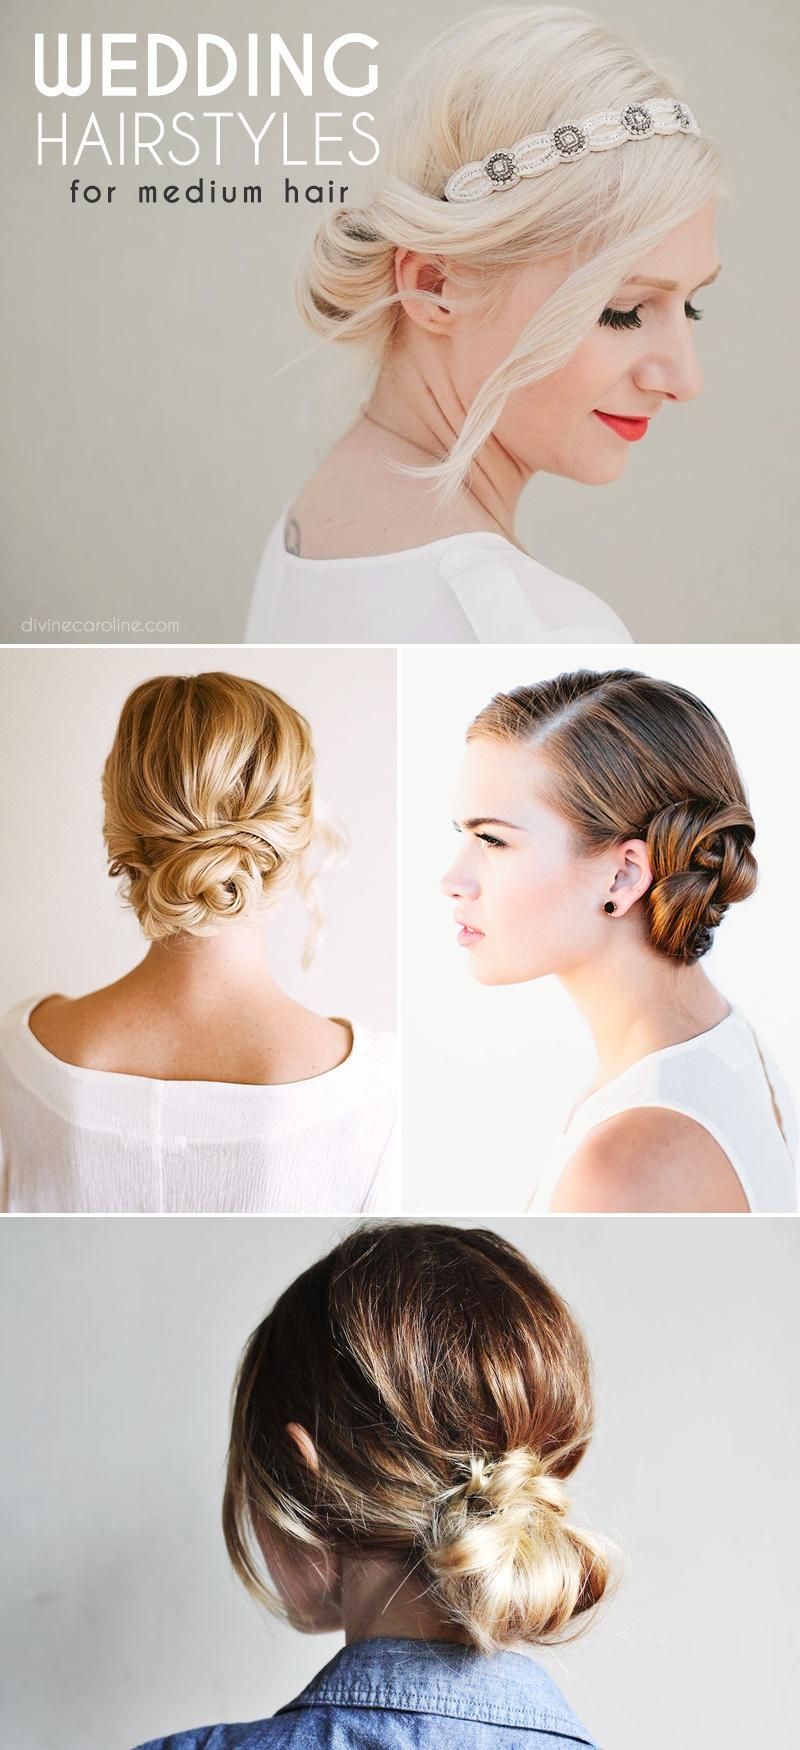 Stunning Wedding Hairstyles for Medium-Length Hair | Medium length ...